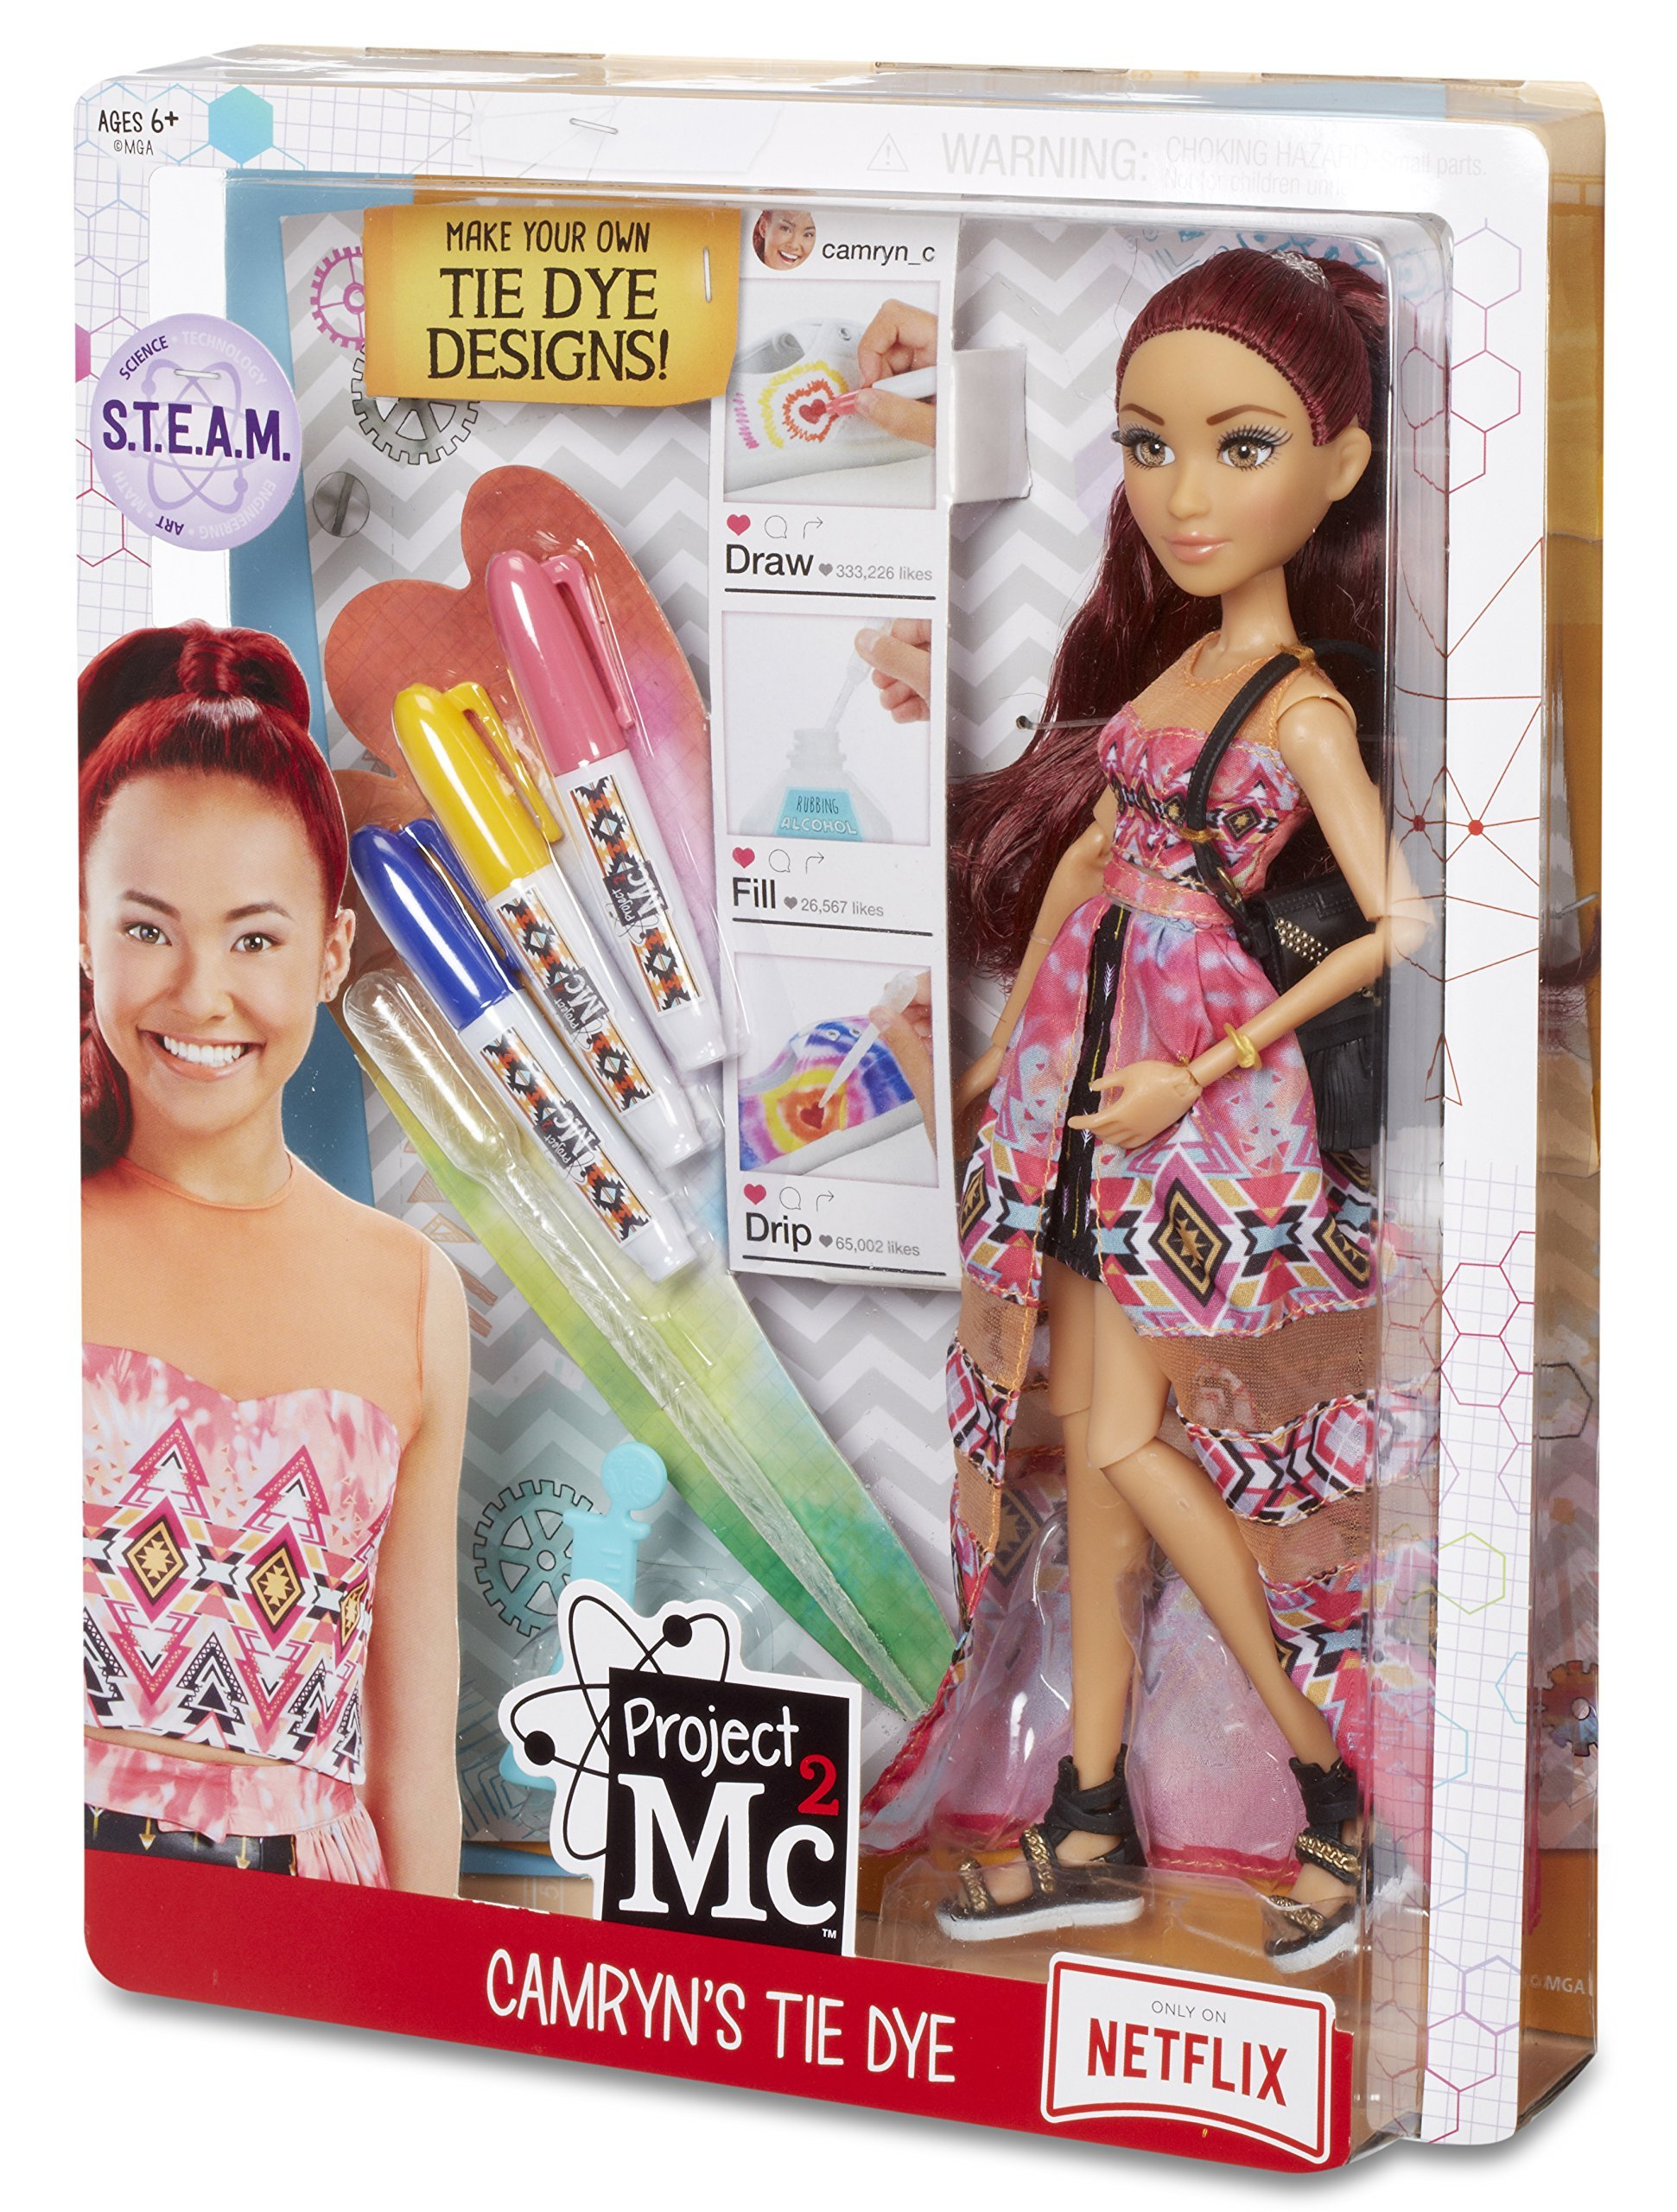 MGA Project MC2 Camryn's Tie Dye Toy lelle 545132